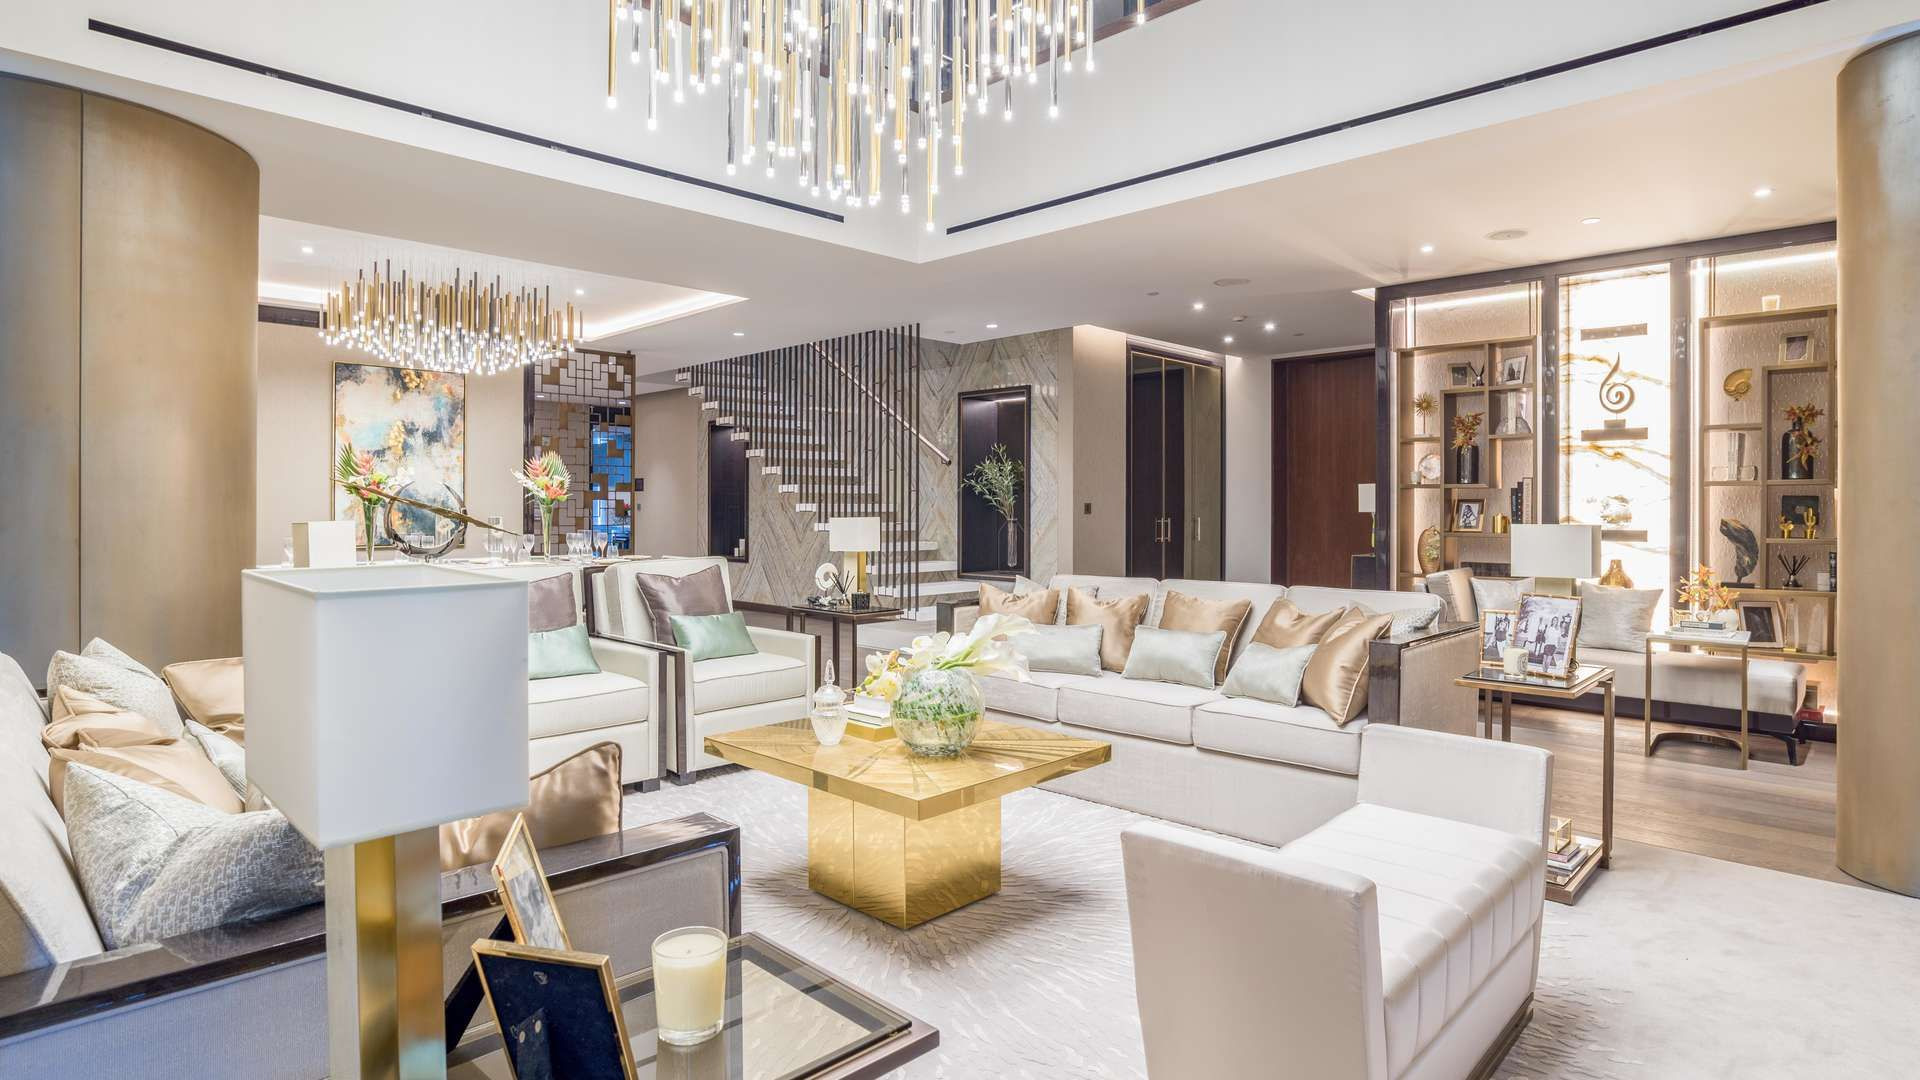 5 Bedroom Penthouse for sale in One Palm. Dubai